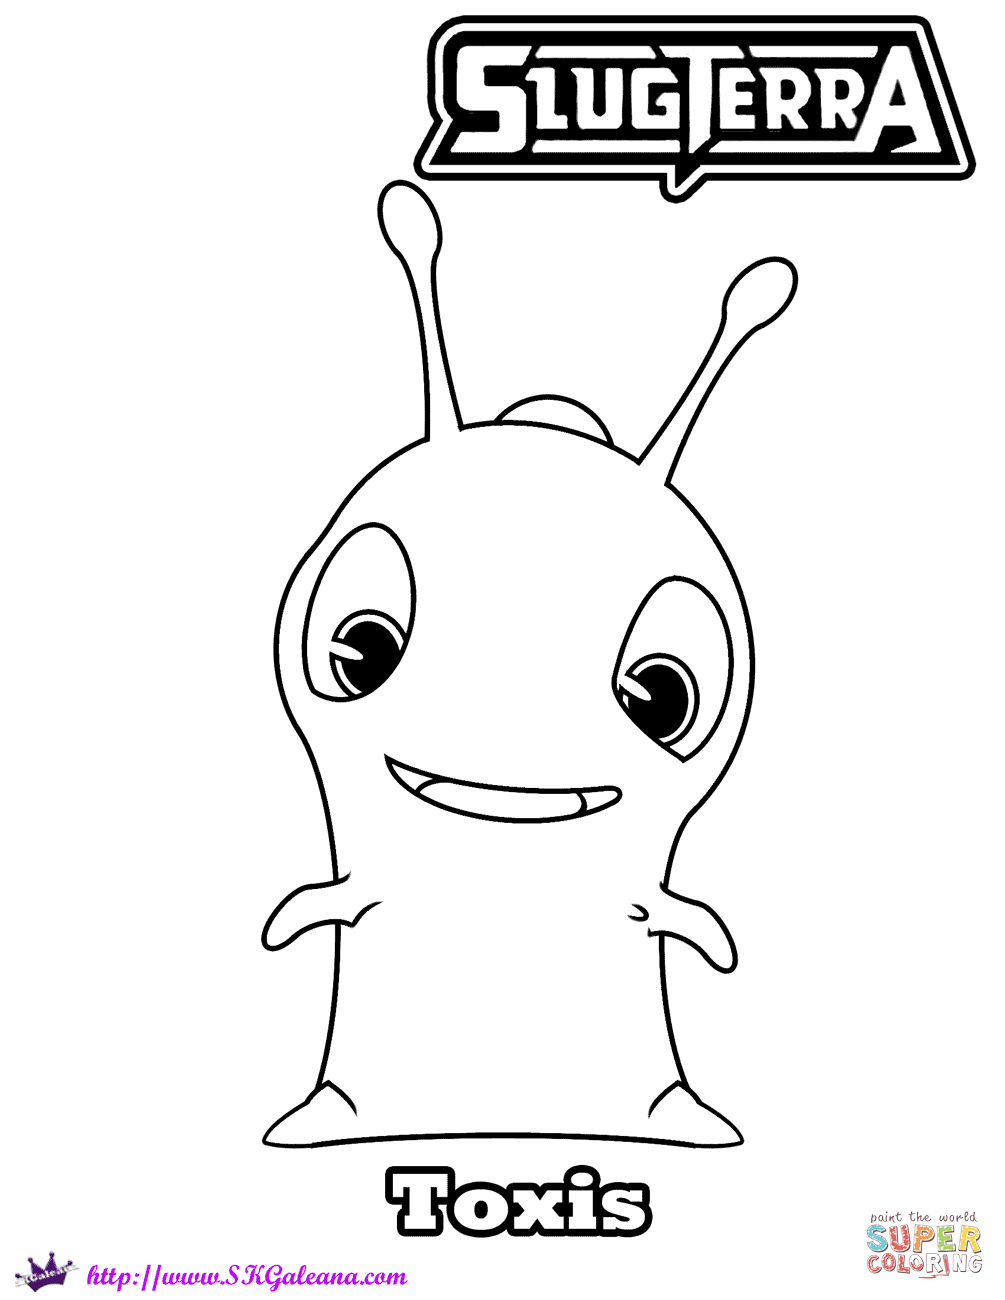 colouring online suggestions download free minion printable colouring suggestions online